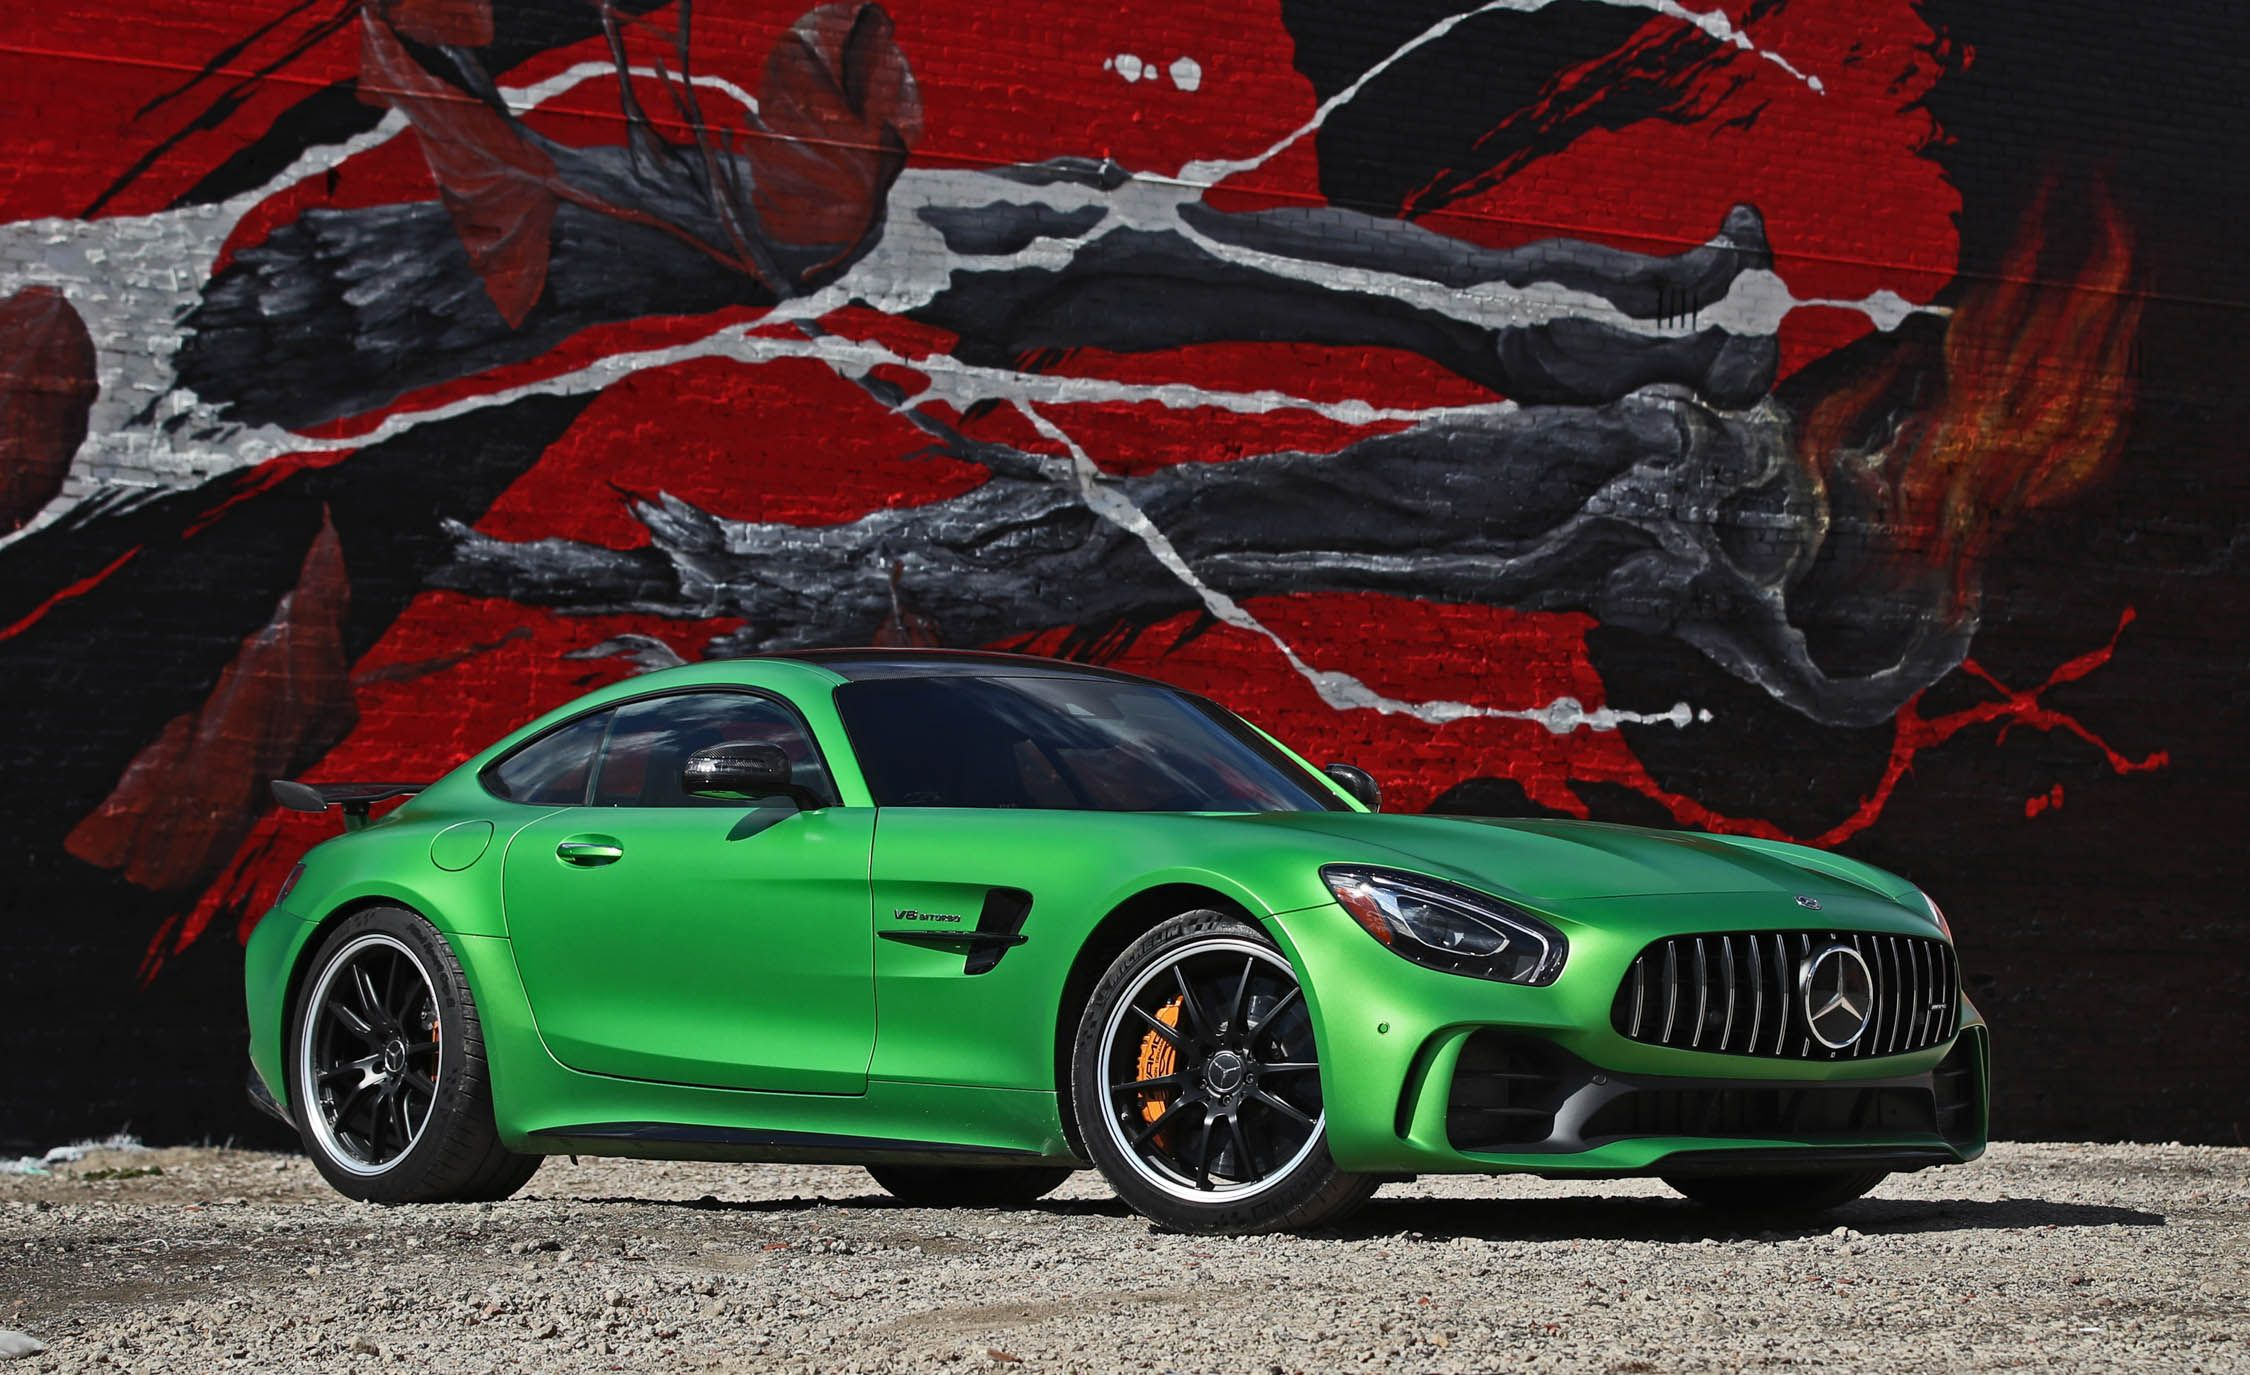 2018 Mercedes Amg Gt C Roadster R Interior Review 3 5l Engine Diagram Car And Driver